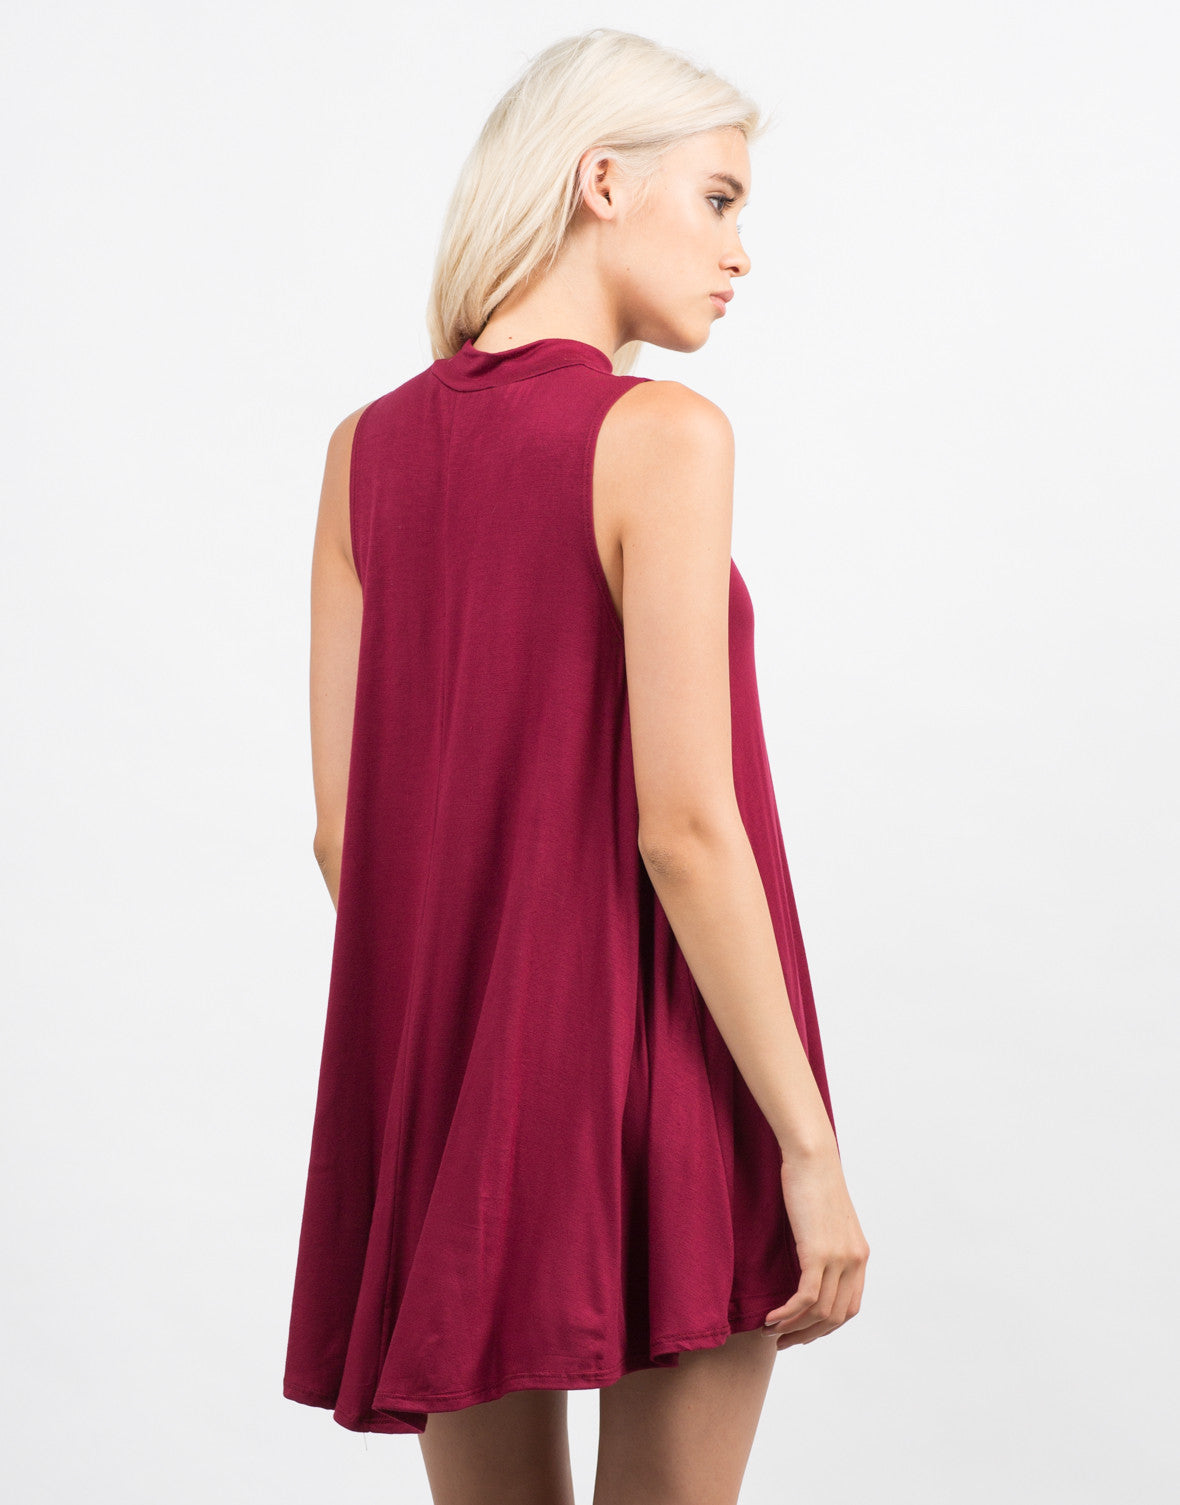 Back View of Mock Neck Flare Dress